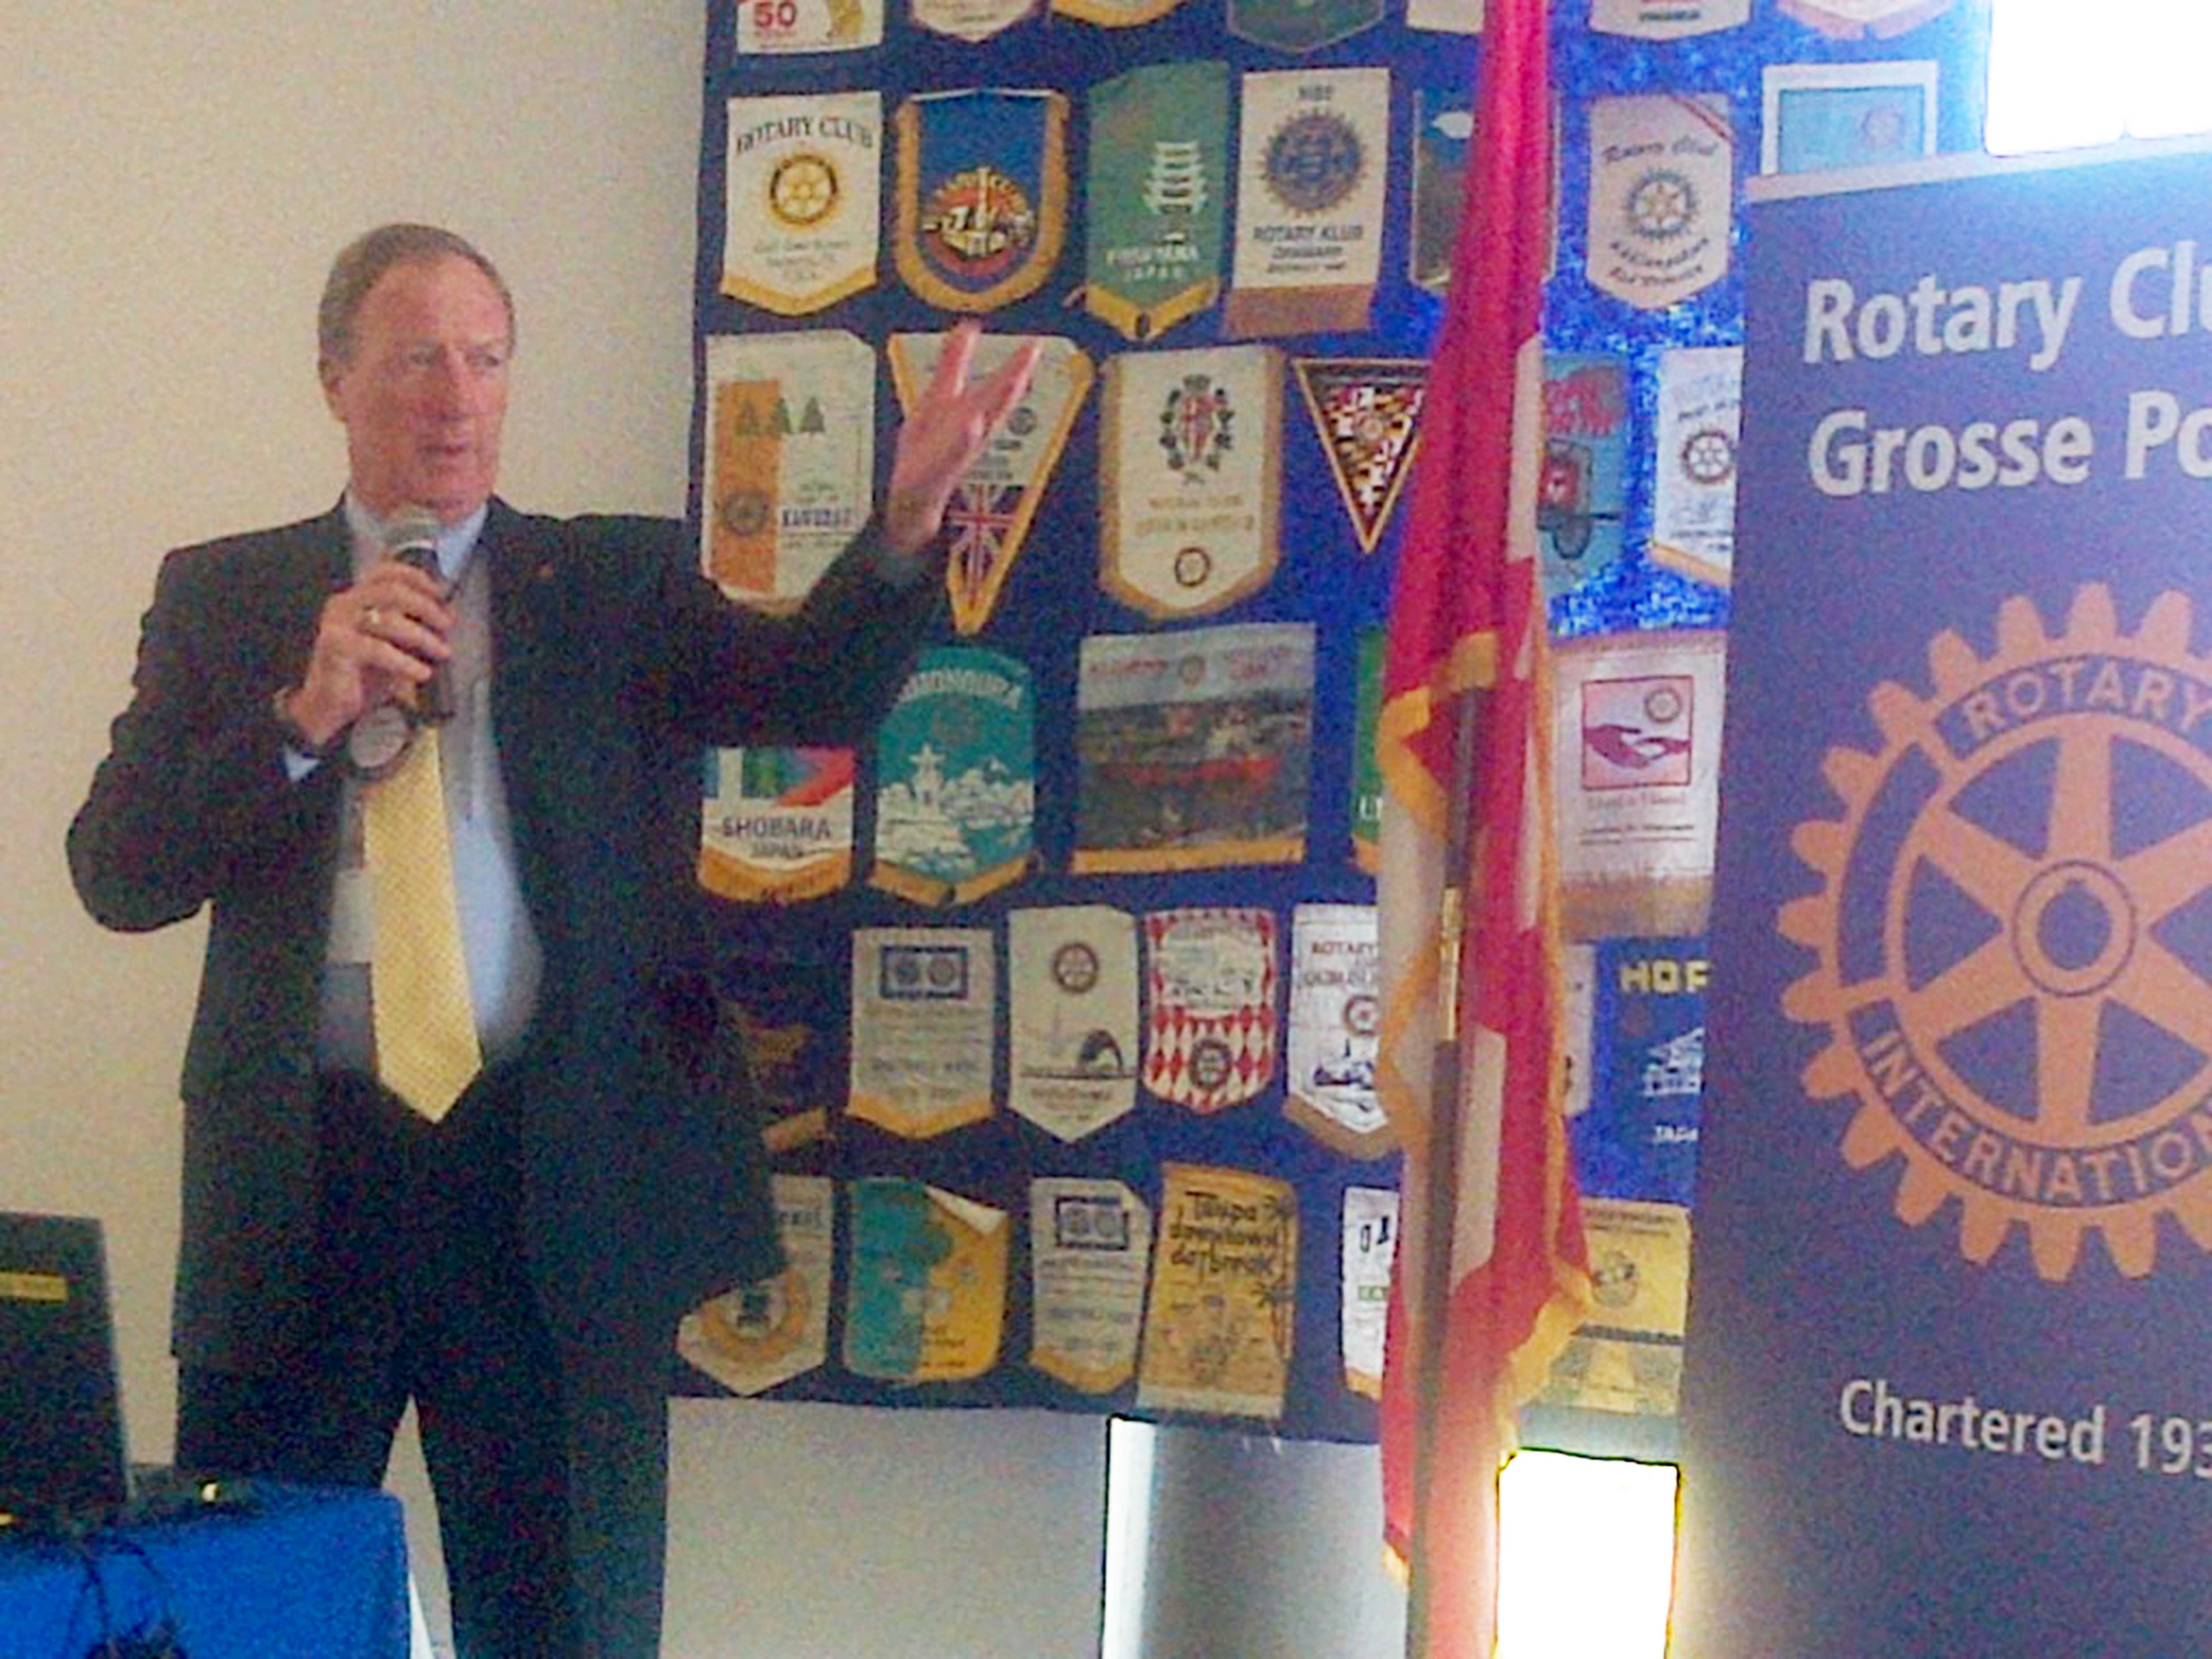 Getting Involved // Dr. Gary Niehaus was the invited speaker at the Grosse Pointe Rotary Club meeting on Monday, Aug. 24. Neihaus was a Rotarian at the Charleston Rotary Club in Illinois before moving to Grosse Pointe.